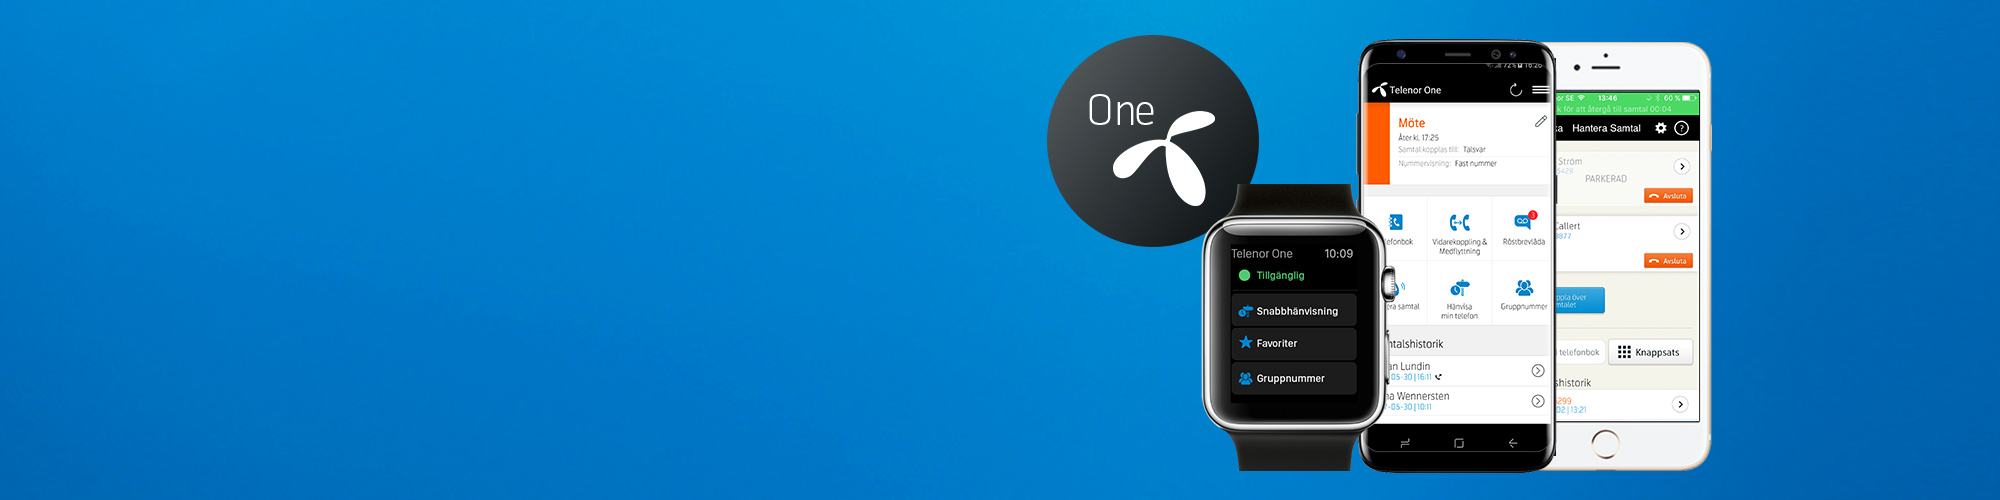 Telenor One App